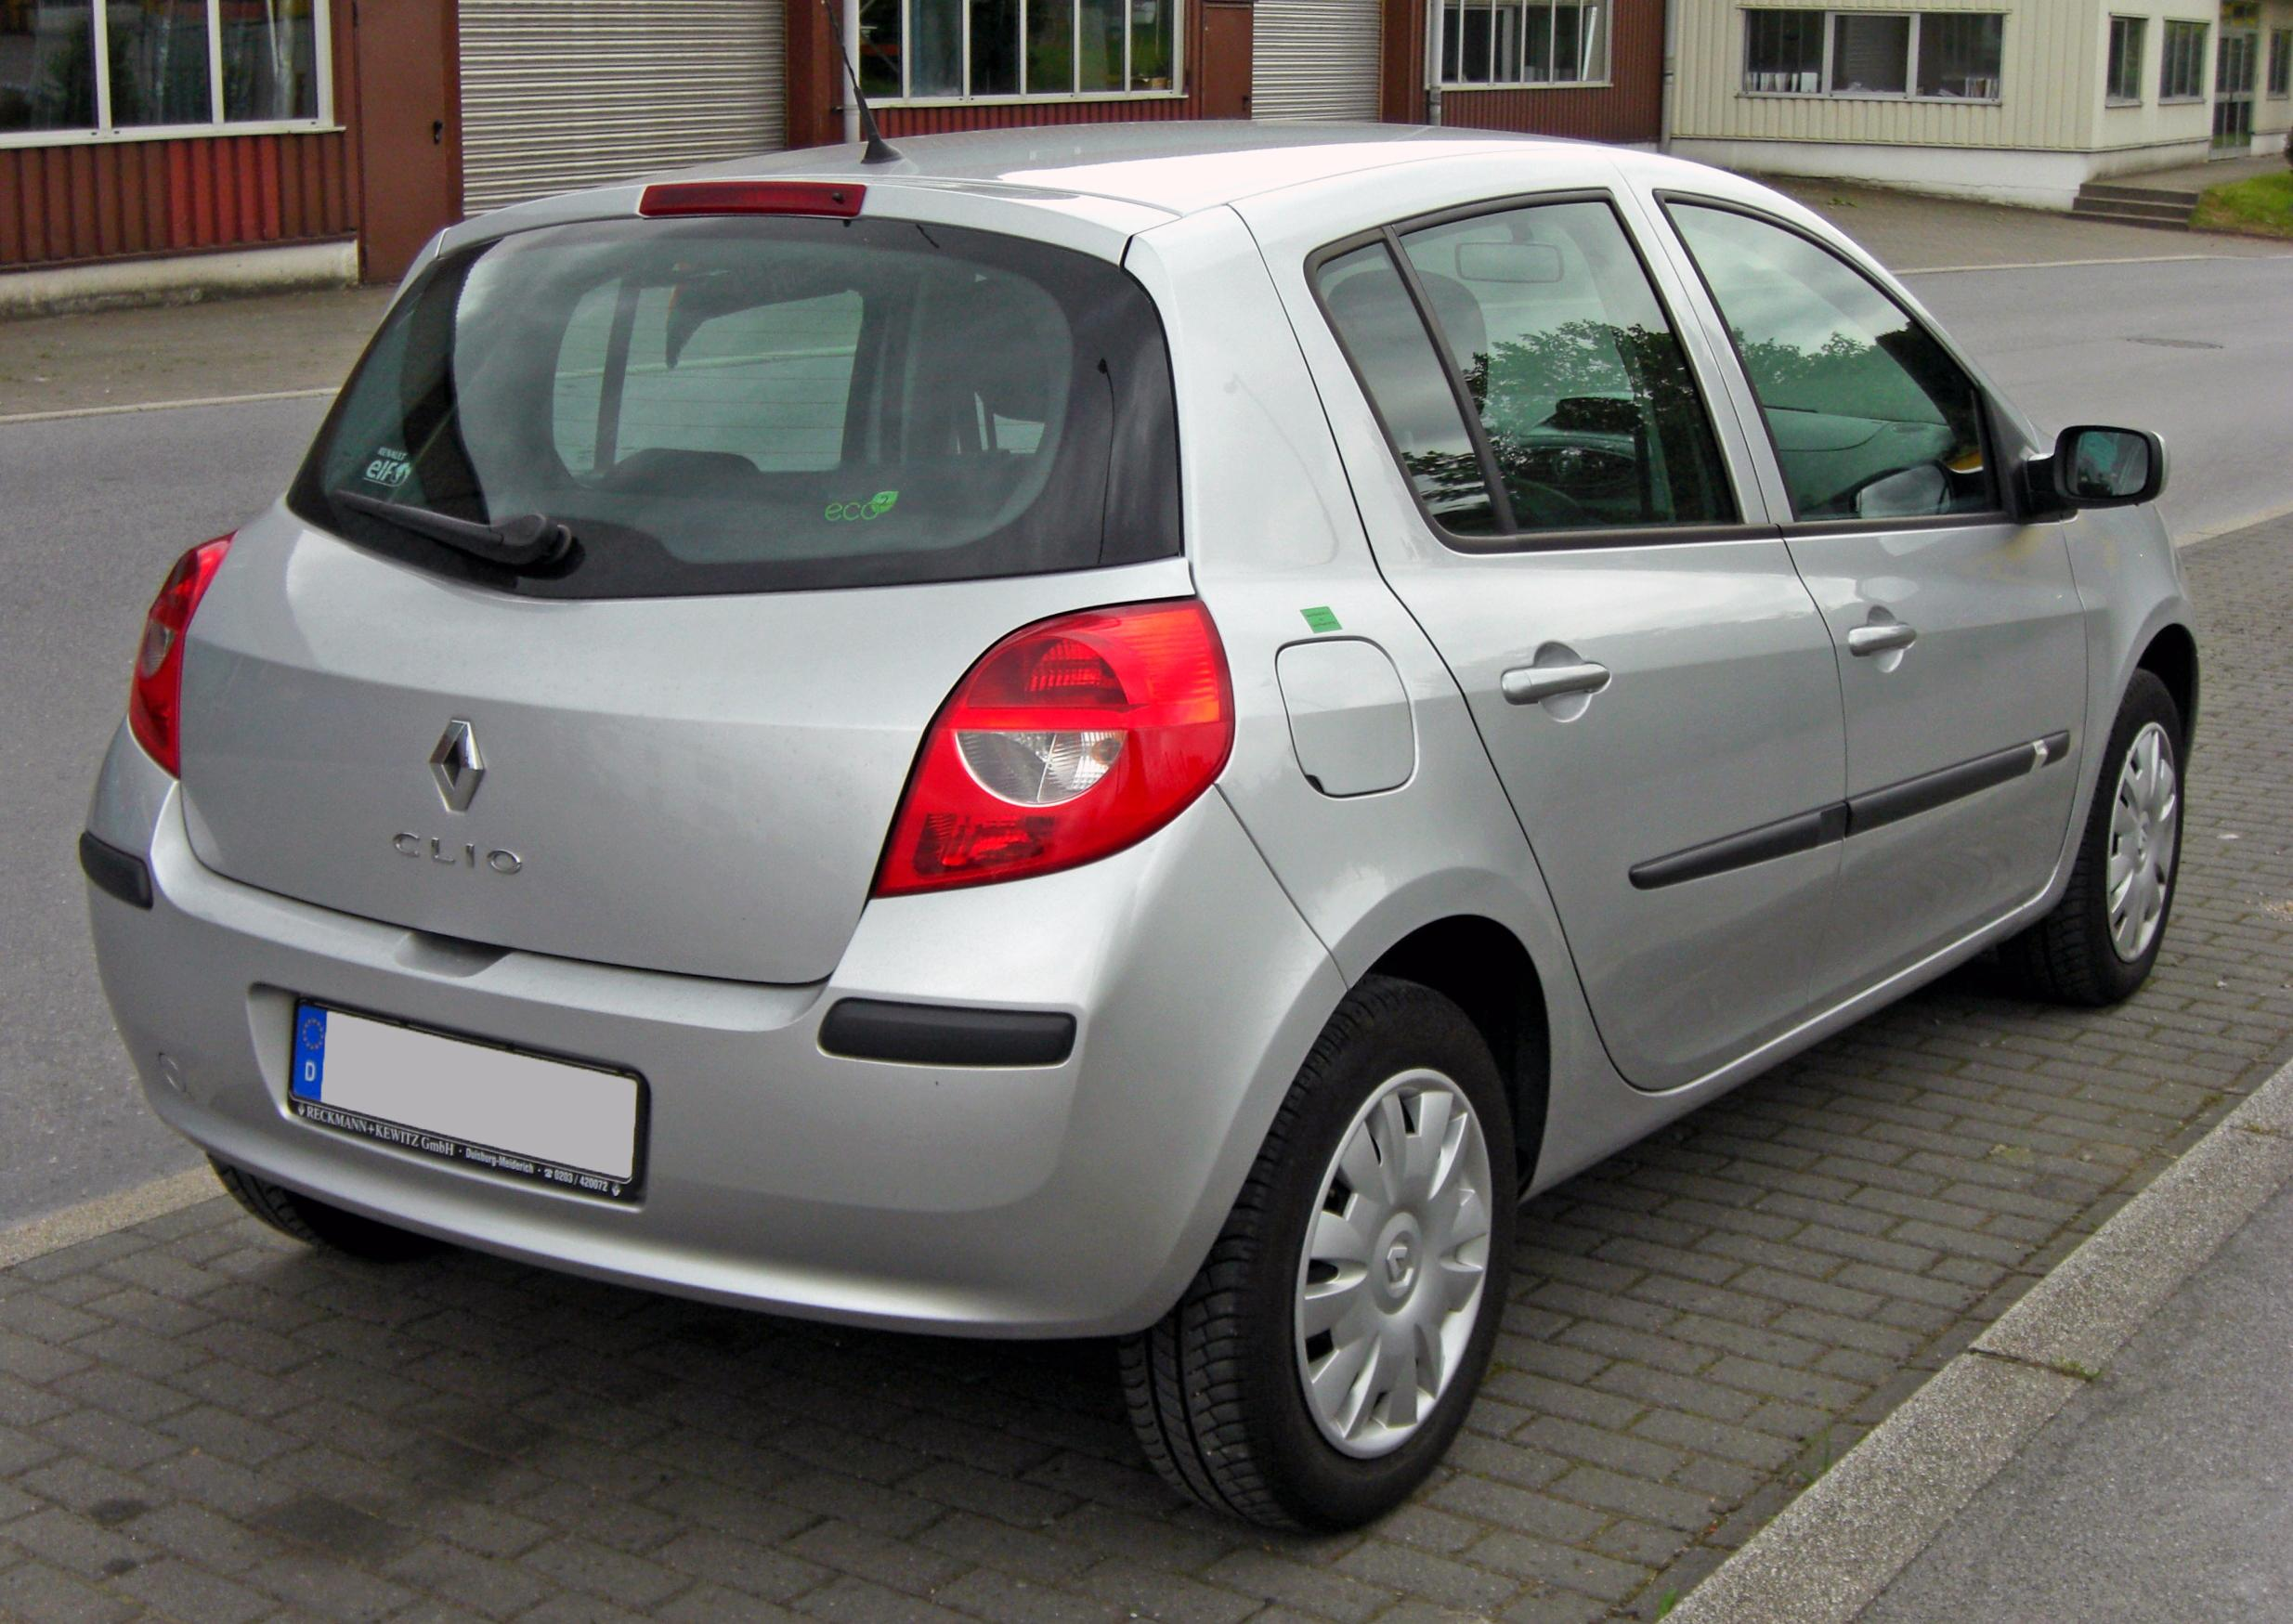 datei renault clio iii 20090527 rear jpg wikipedia. Black Bedroom Furniture Sets. Home Design Ideas